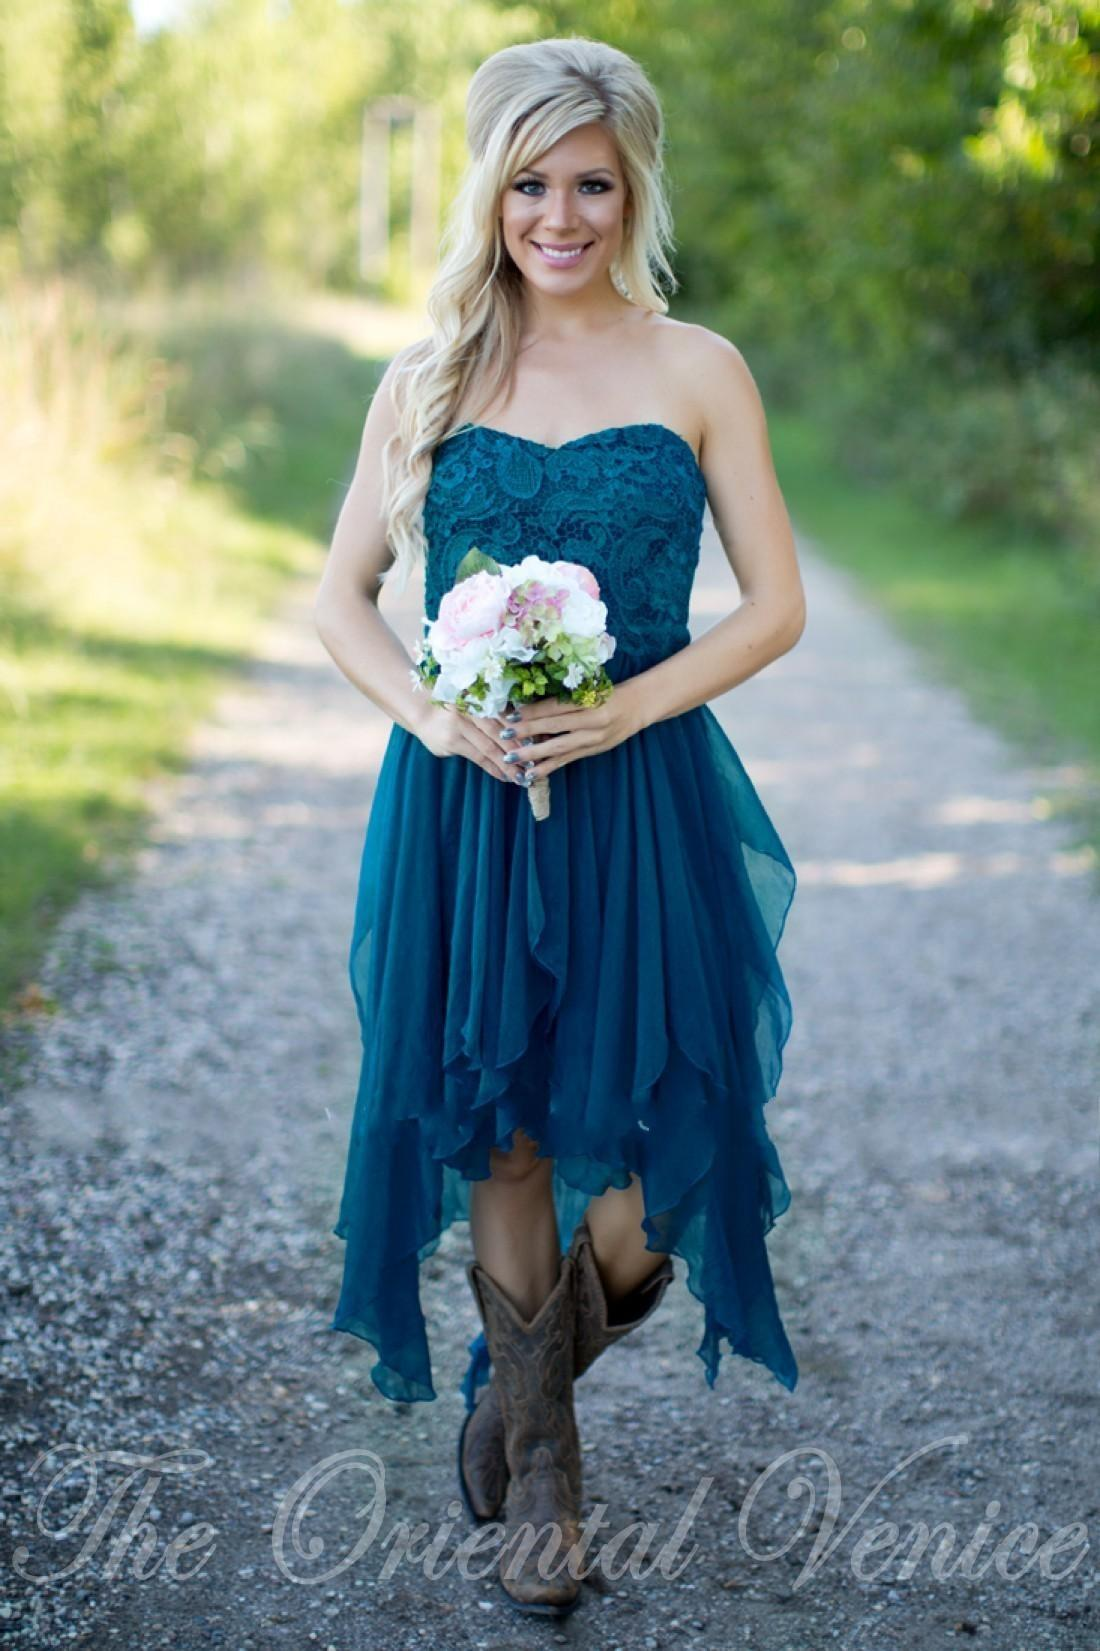 Country short bridesmaid dresses 2017 cheap teal chiffon summer country short bridesmaid dresses 2017 cheap teal chiffon summer beach bridesmaid dresses lace appliques high low ombrellifo Gallery